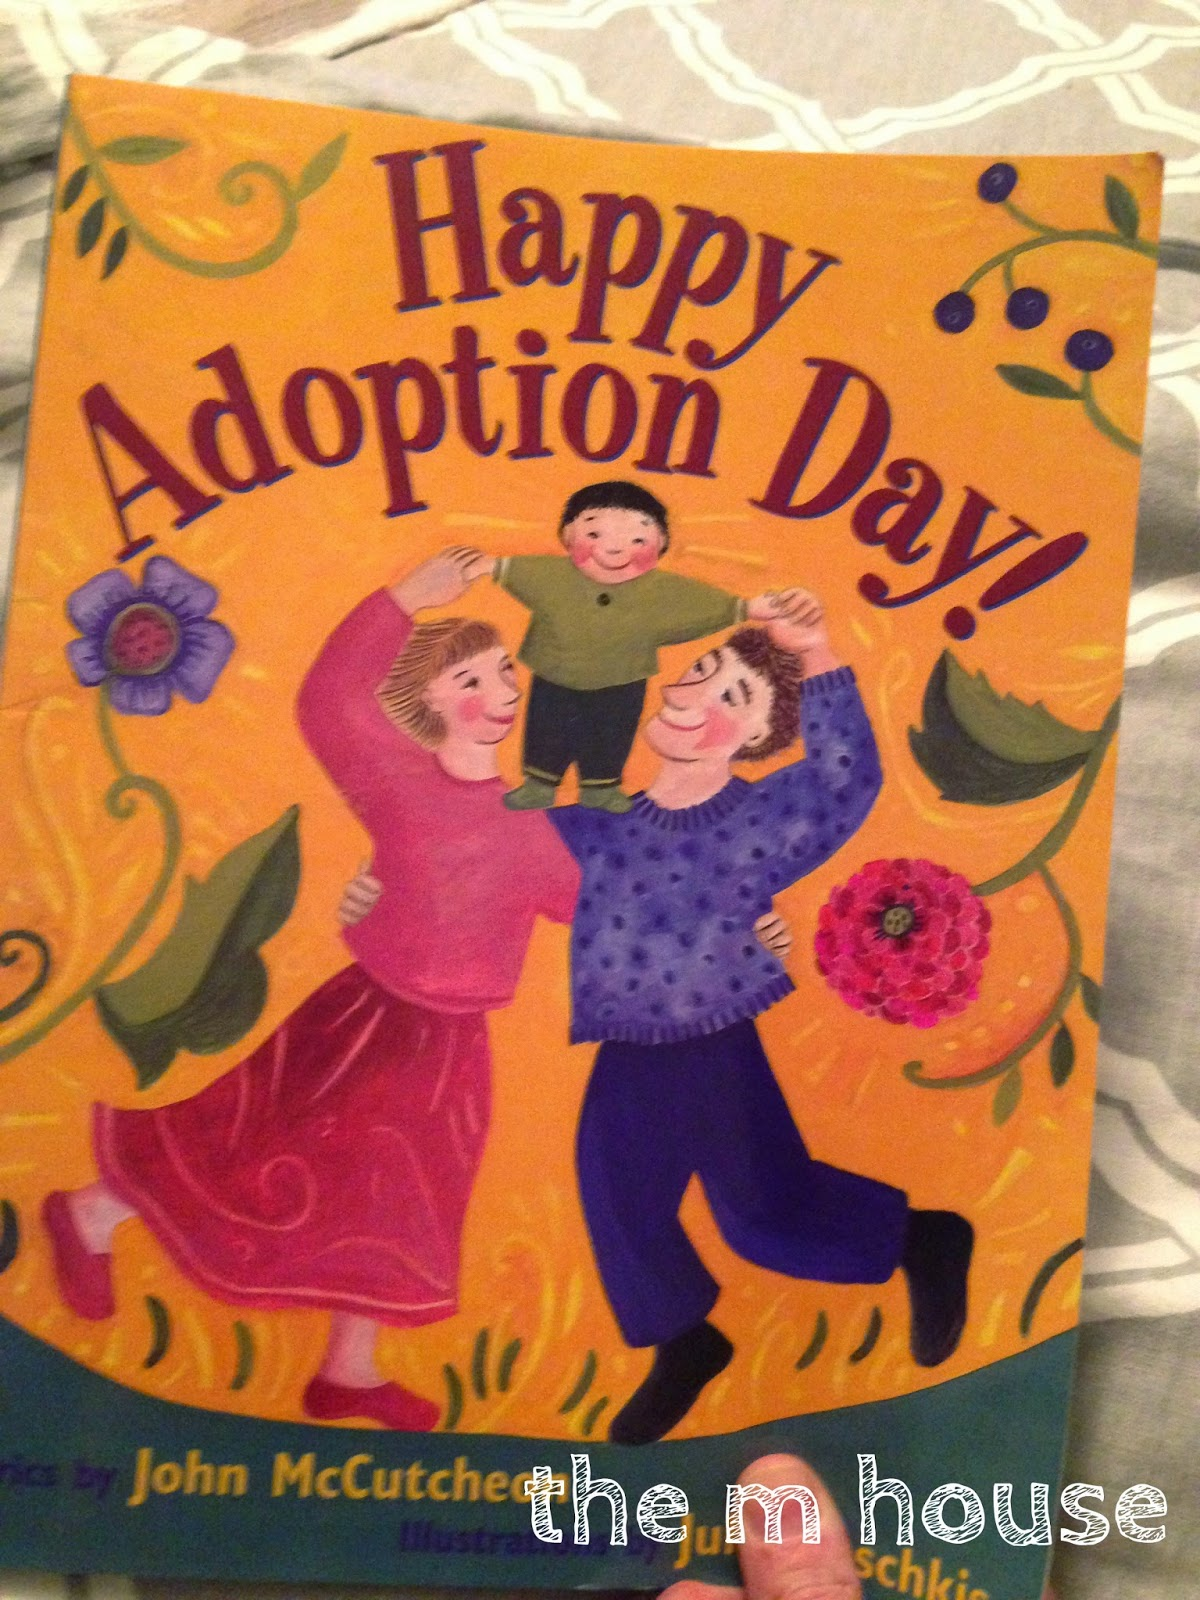 Happy Adoption Day